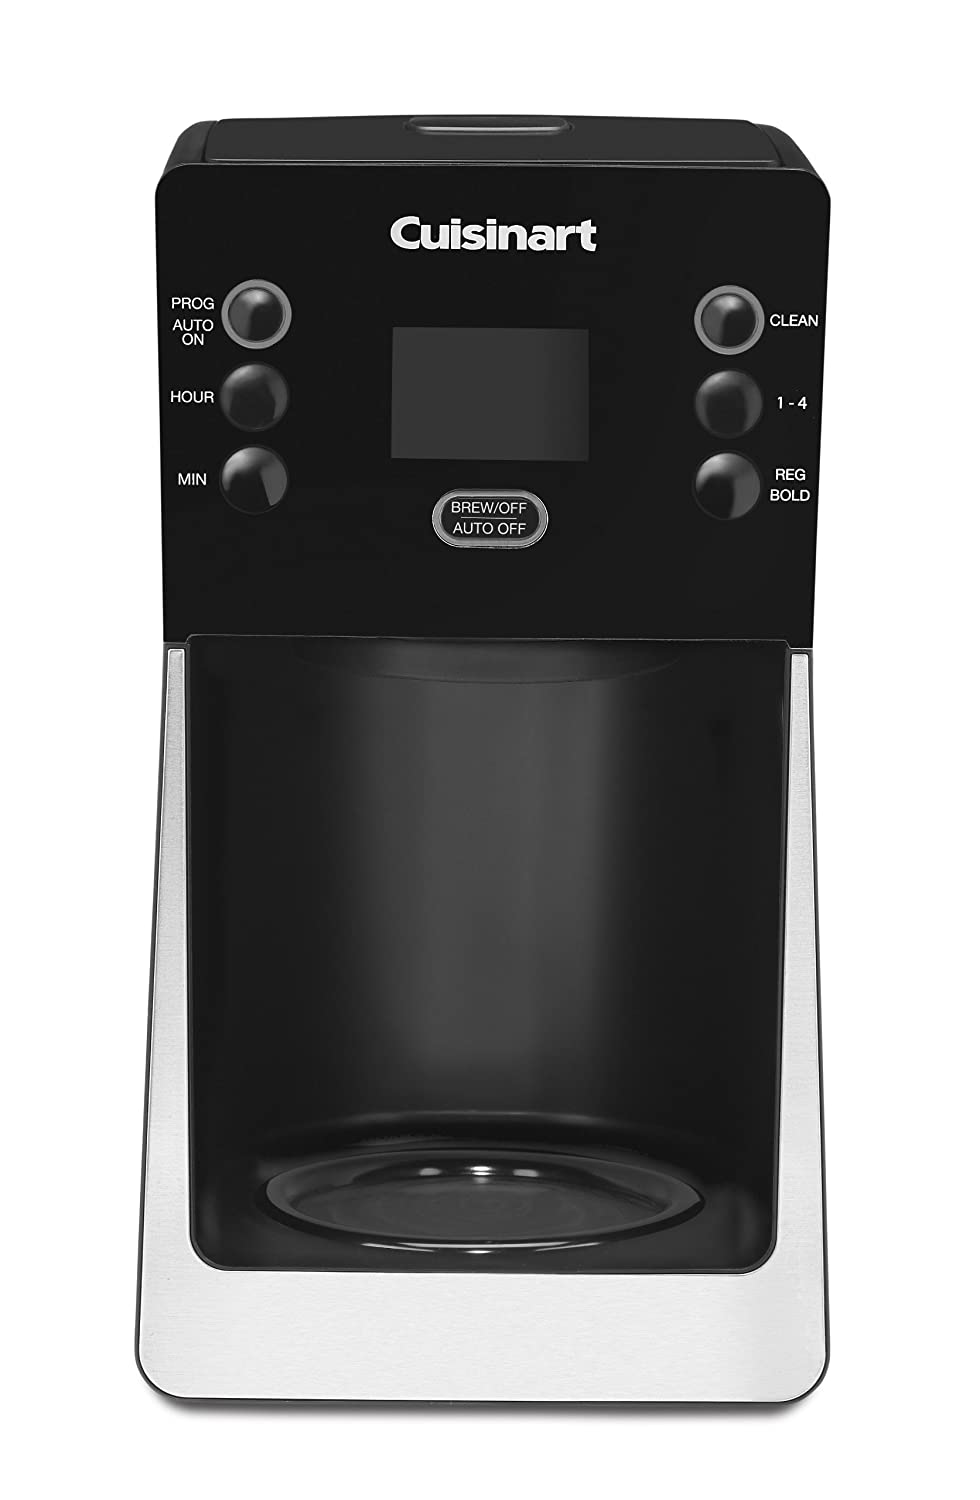 Cuisinart Coffee Maker Model Dcc 2800 : Cuisinart DCC-2800 Perfec Temp 14-Cup Programmable Coffeemaker, Black , New, Fre 86279041456 eBay